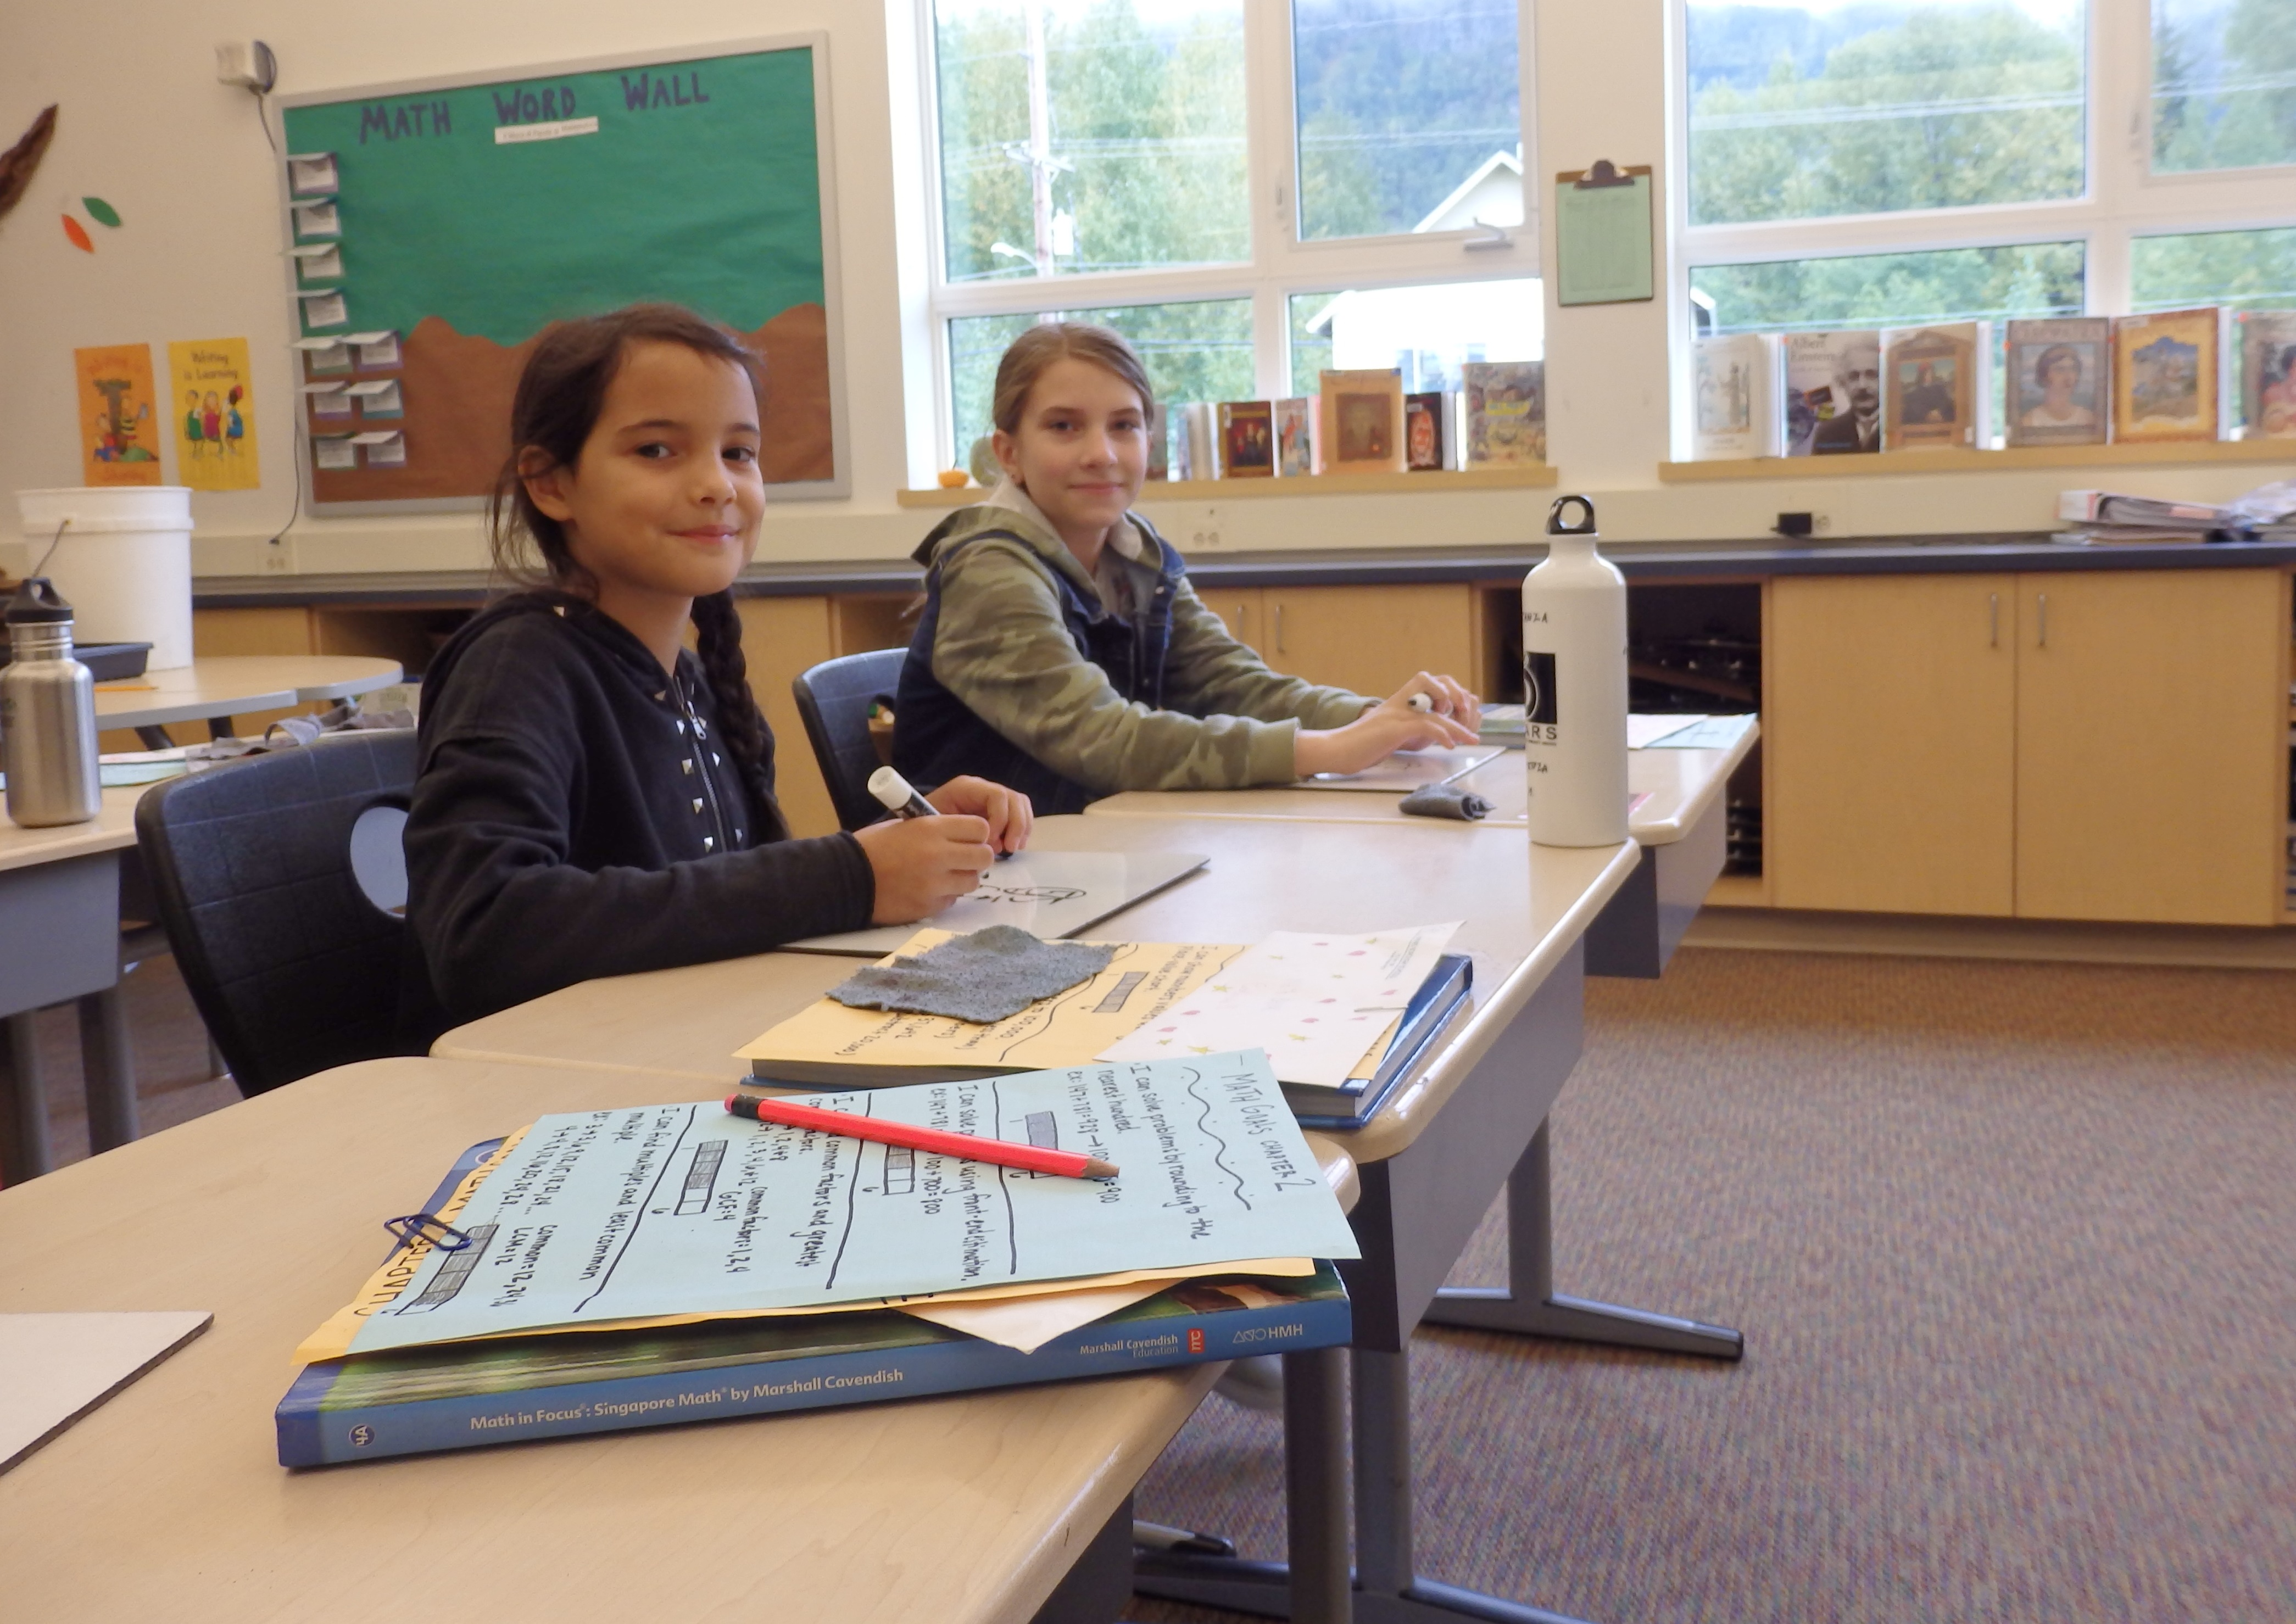 Costanza Marabini, left, went to school in Haines for about a month while visiting a family friend. Marabini sits next to fourth-grader Audrey Bader. (Photo by Emily Files/KHNS)